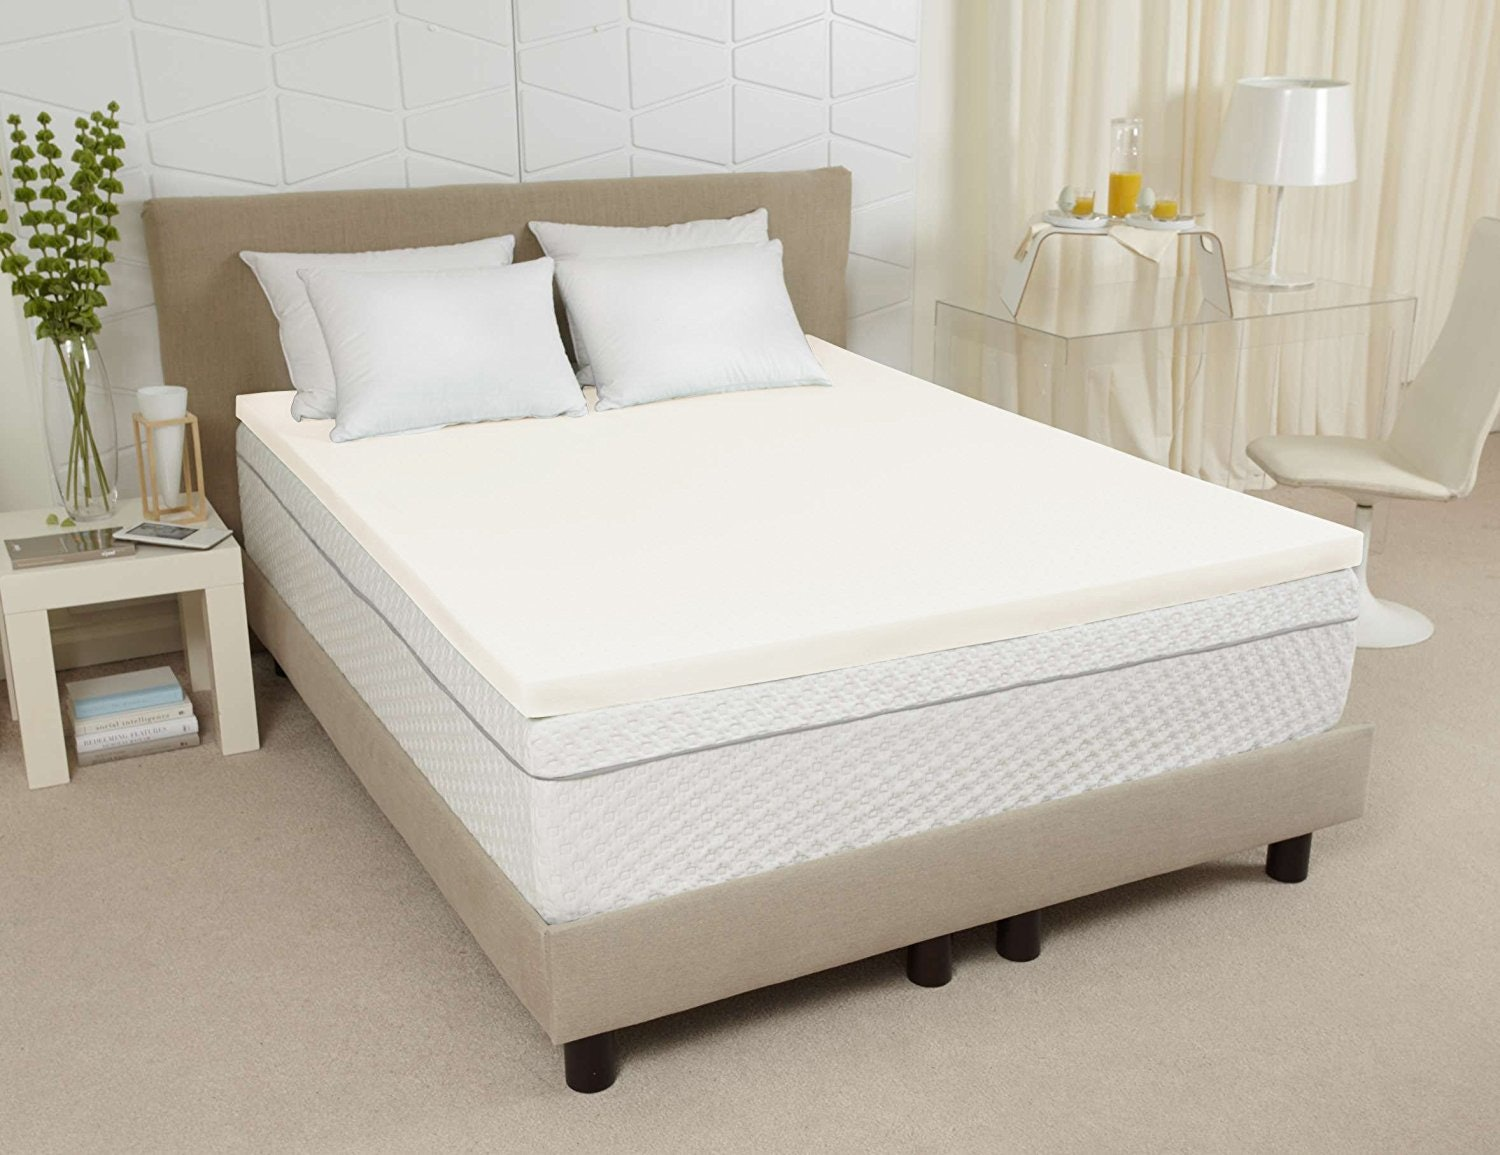 7an ecofriendly mattress topper made with plantbased ingredients